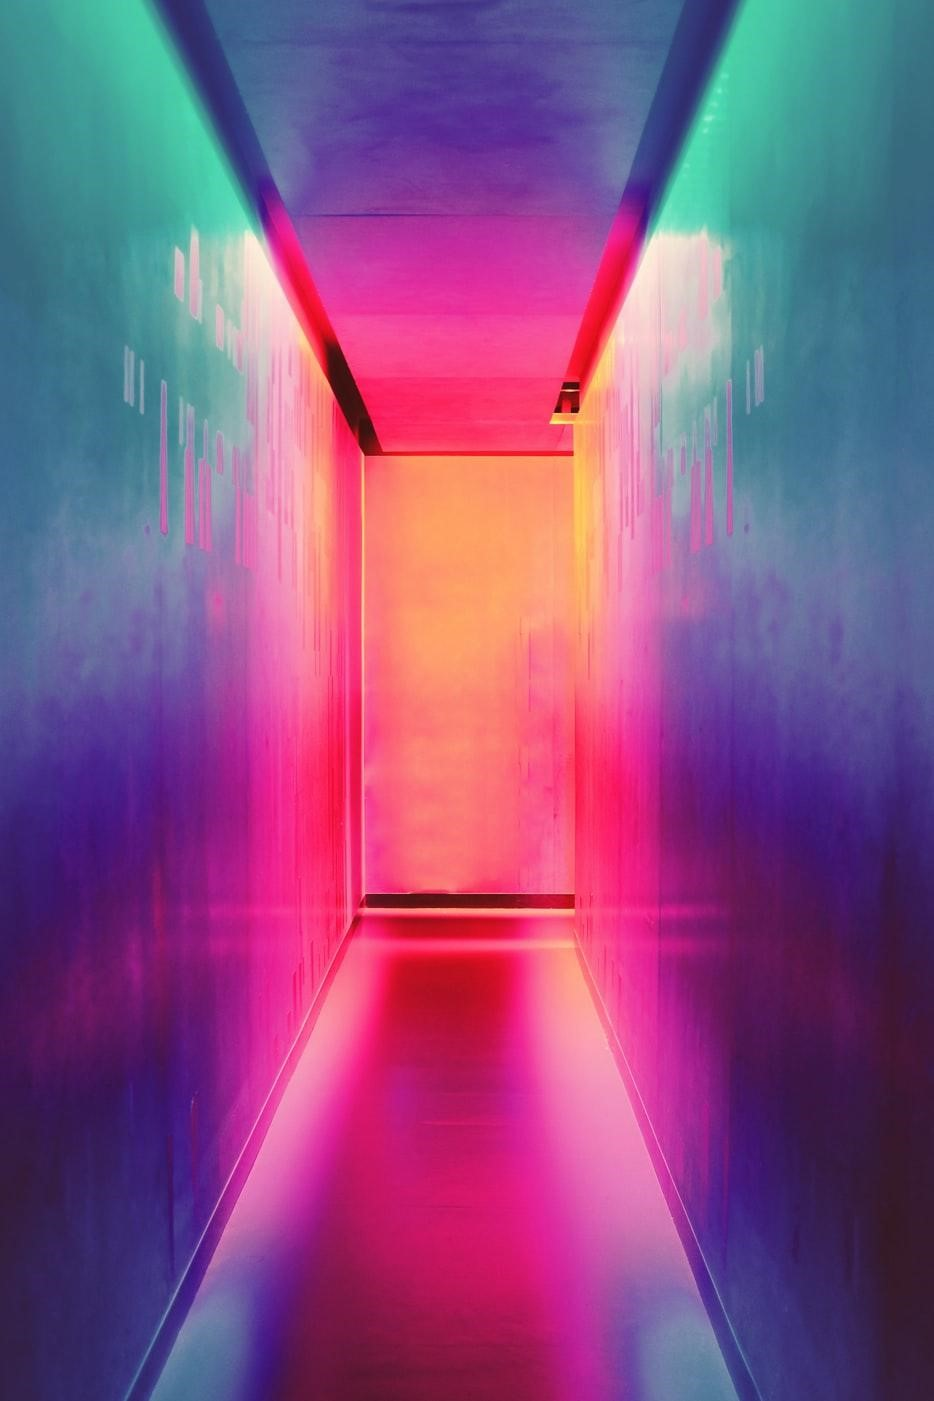 graidient of colors down hallway